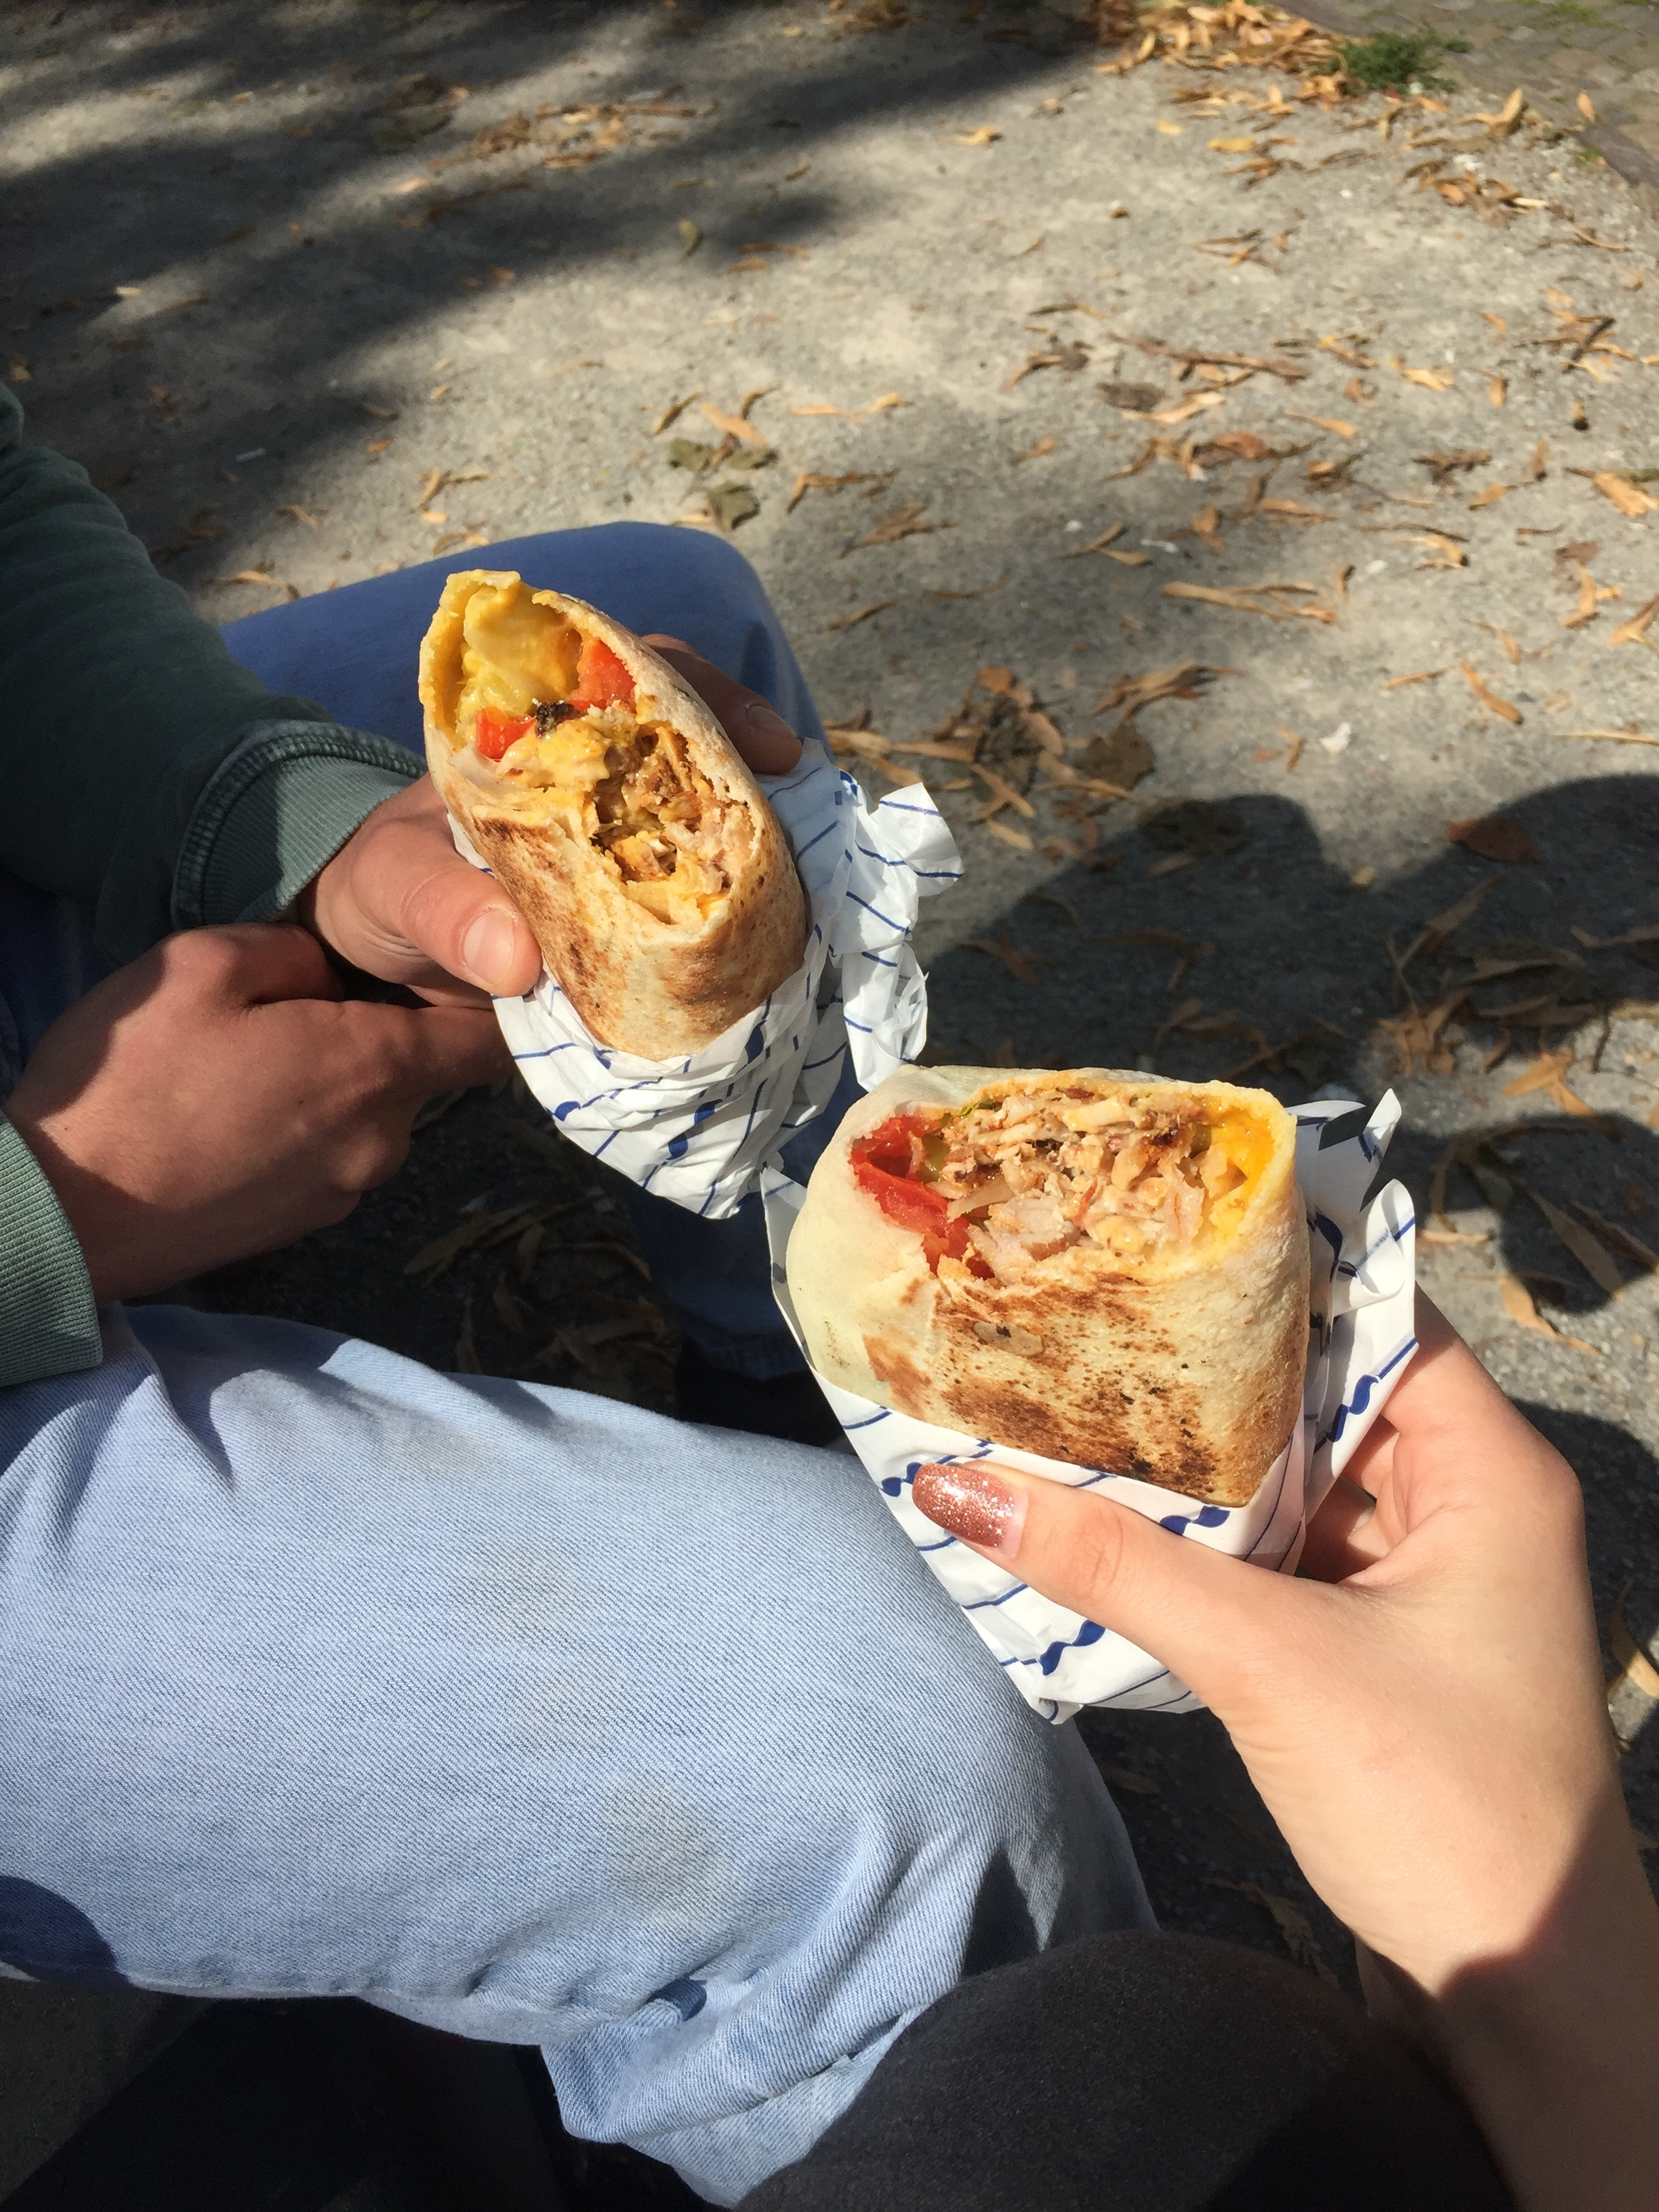 There are countless sandwiches to choose from: Hallumi, Köfte-Hallumi, Falafel, Schwarma, etc.